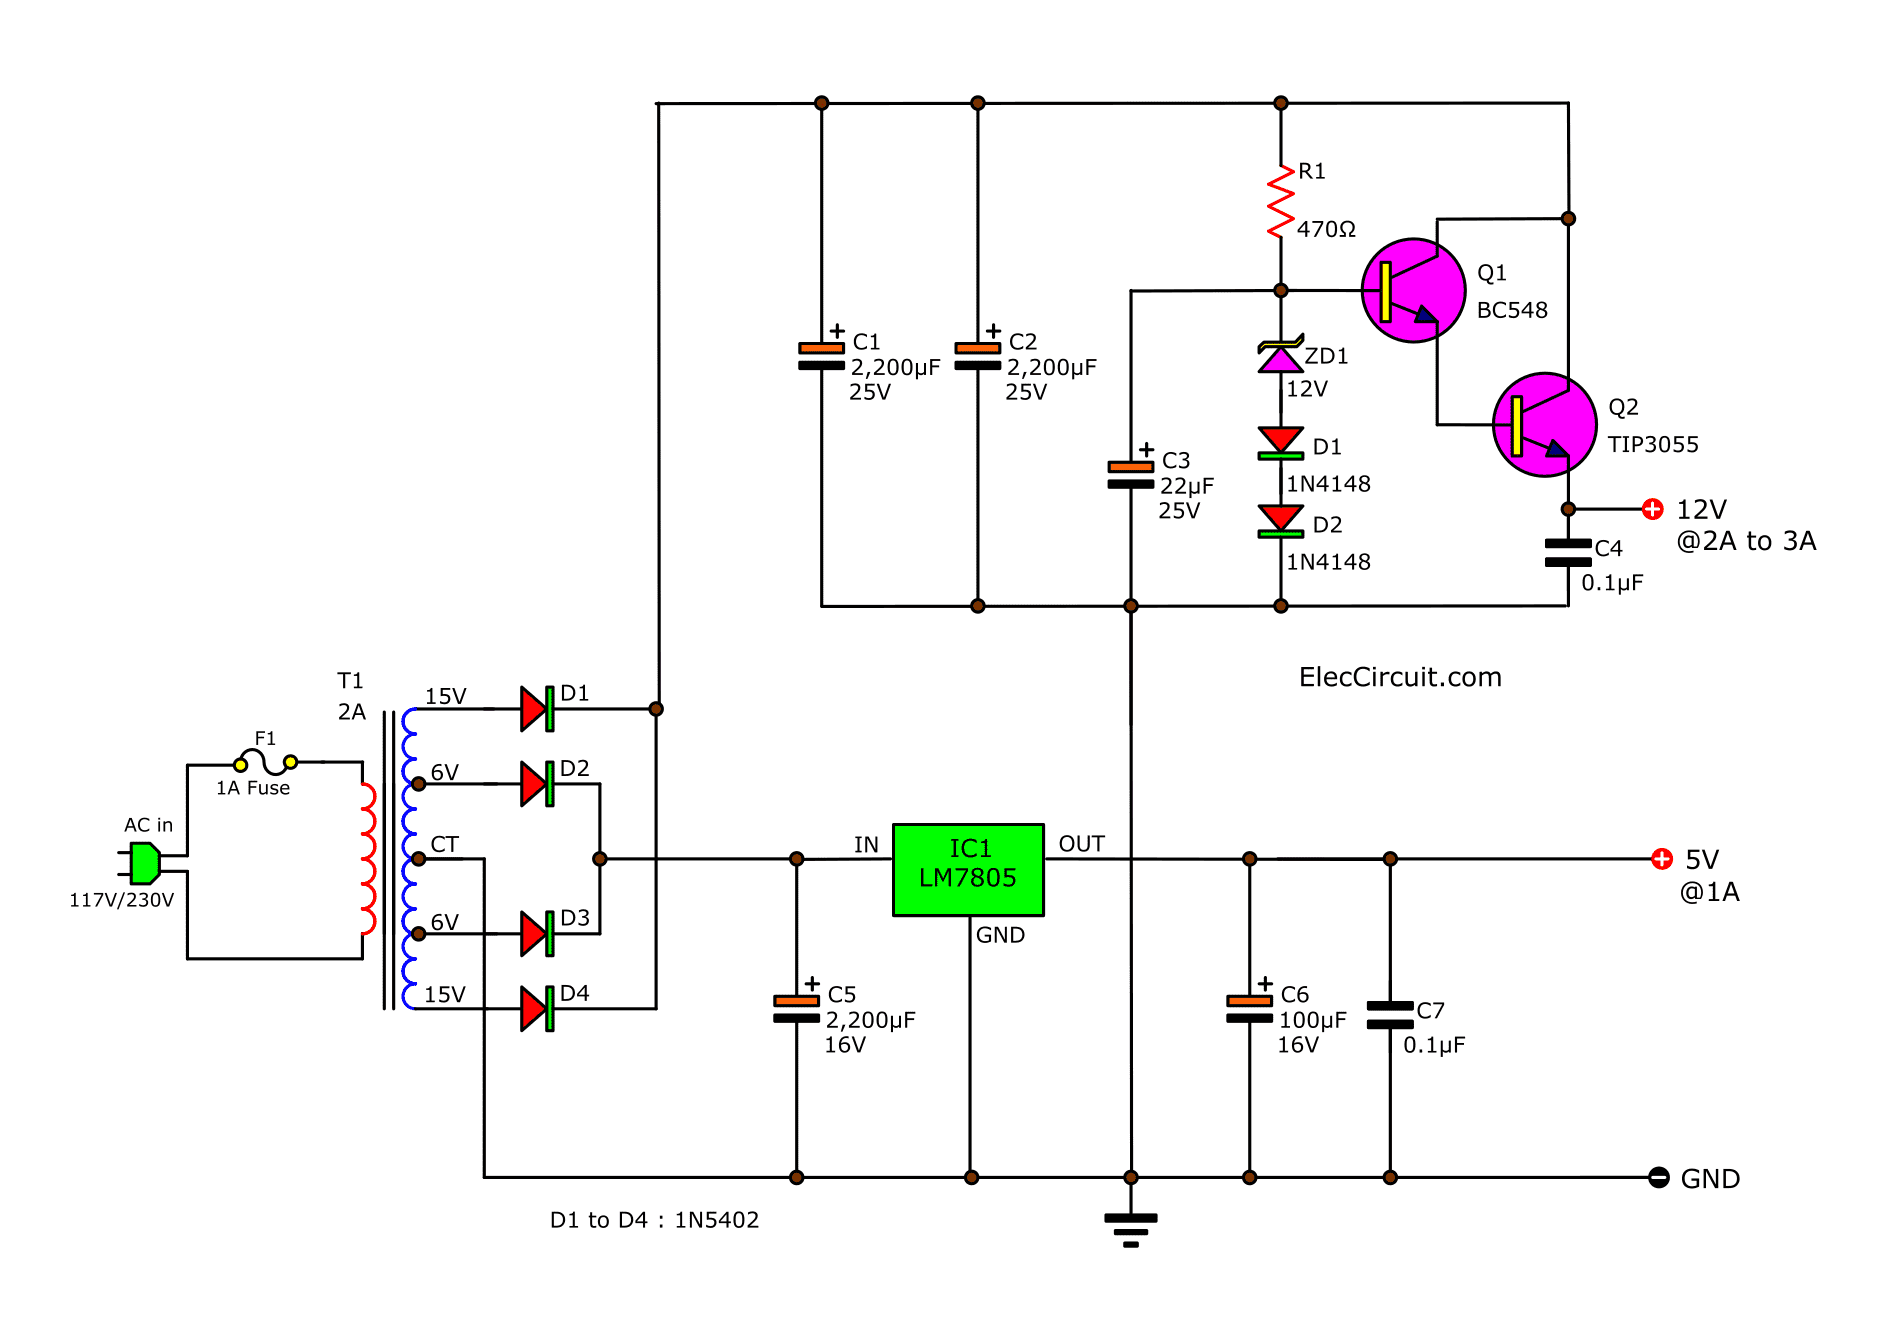 DC power supply 5V and 12V using 2N3055-LM309